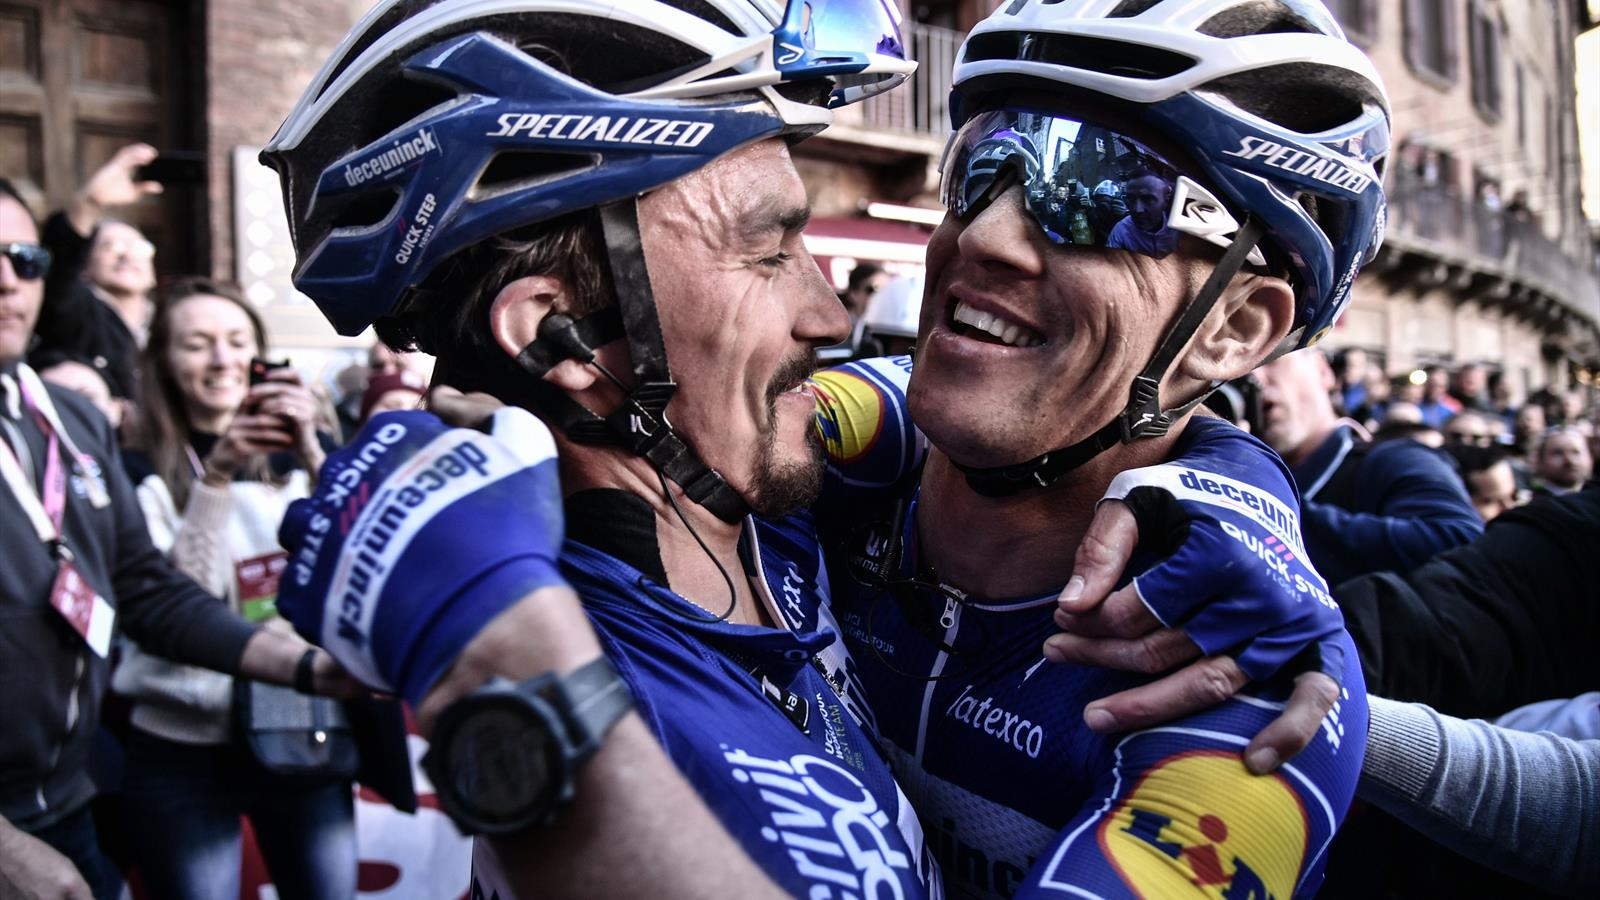 Julian Alaphilippe wins Strade Bianche as Deceuninck-QuickStep dominance continues